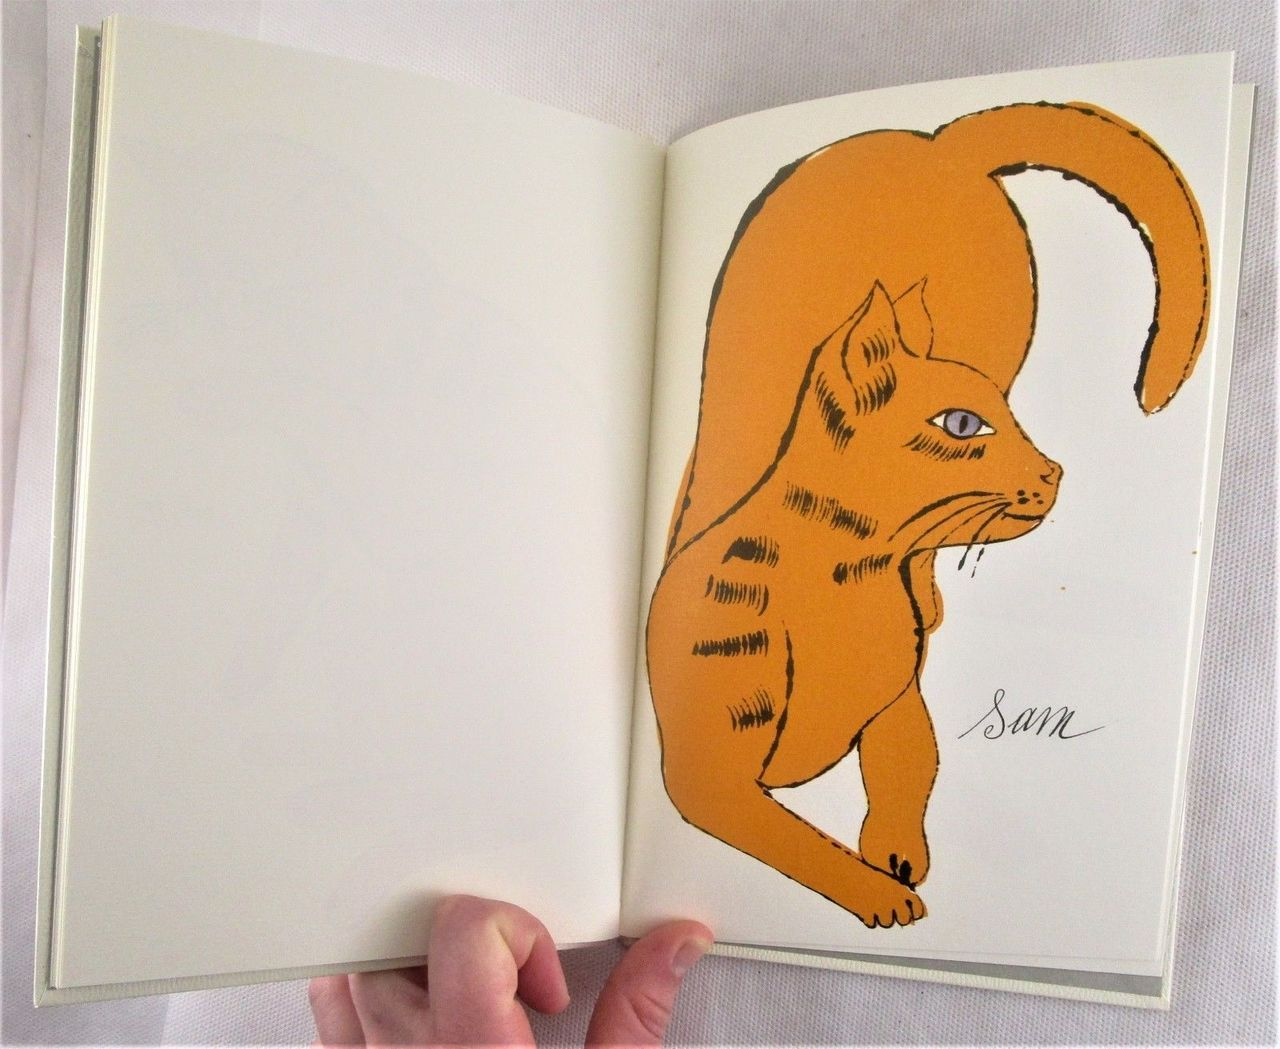 25 CATS NAME SAM AND ONE BLUE PUSSY; and HOLY CATS, by Andy Warhol; Charles Lisanby -1987 [2 Vols, Ltd Ed]